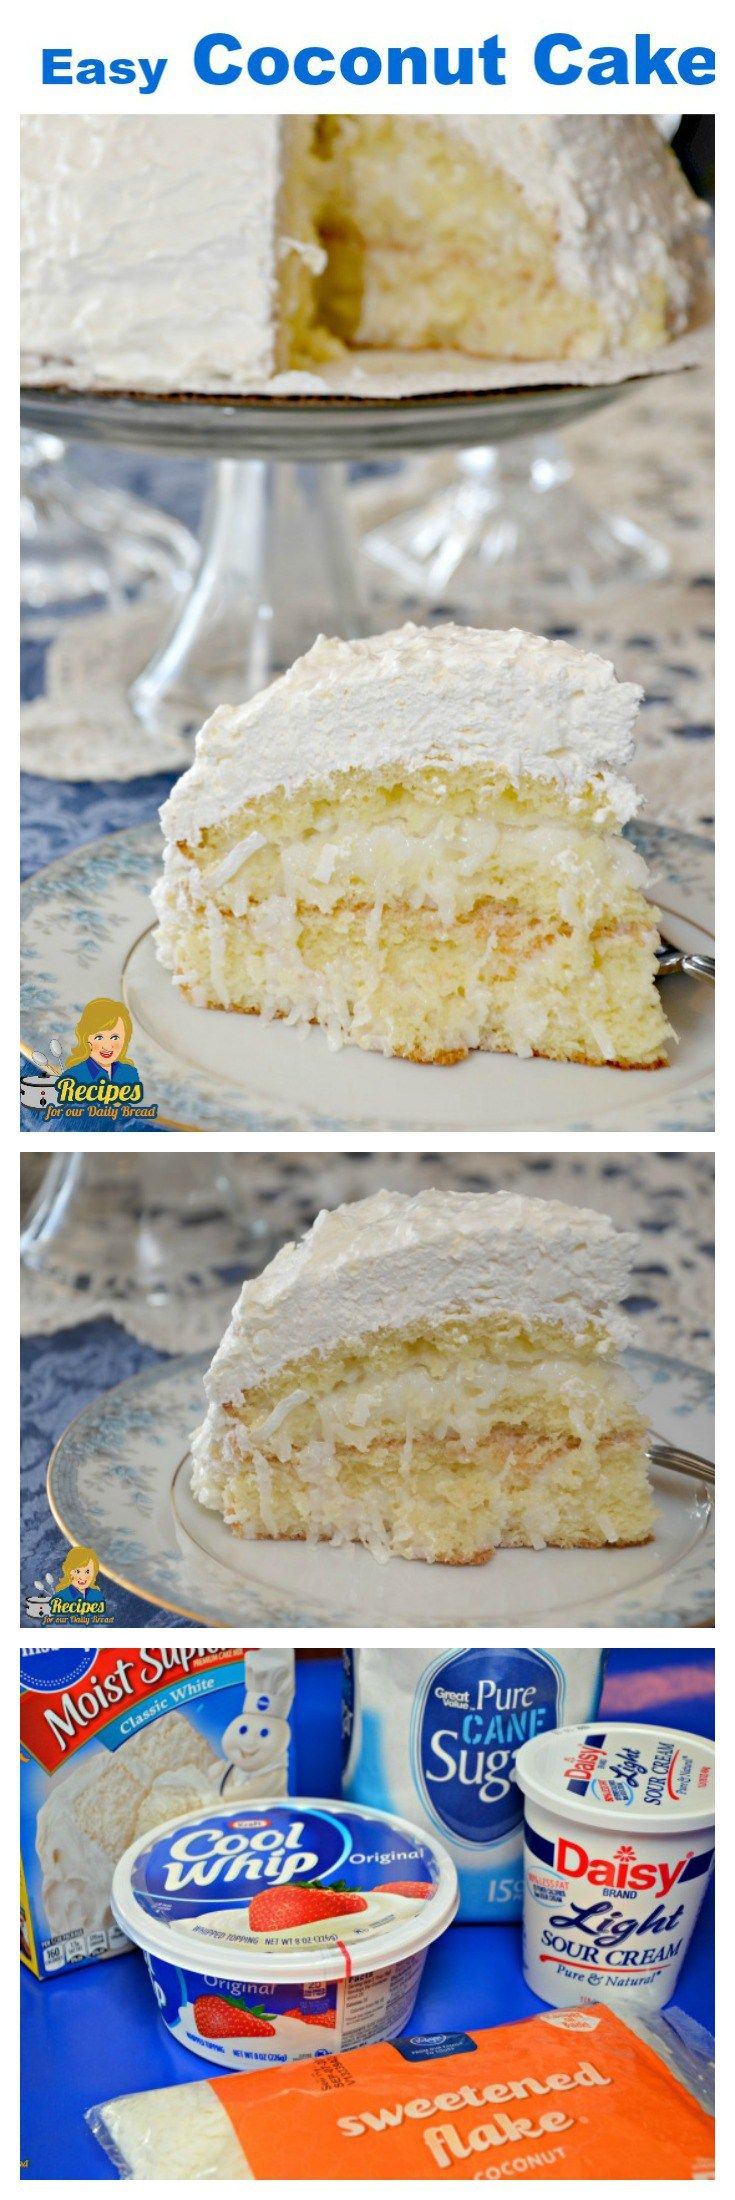 Easy Coconut Cake is made using 5 simple ingredients including cake mix, coconut, sugar, sour cream and whipped topping. Simple to make and super delicious.